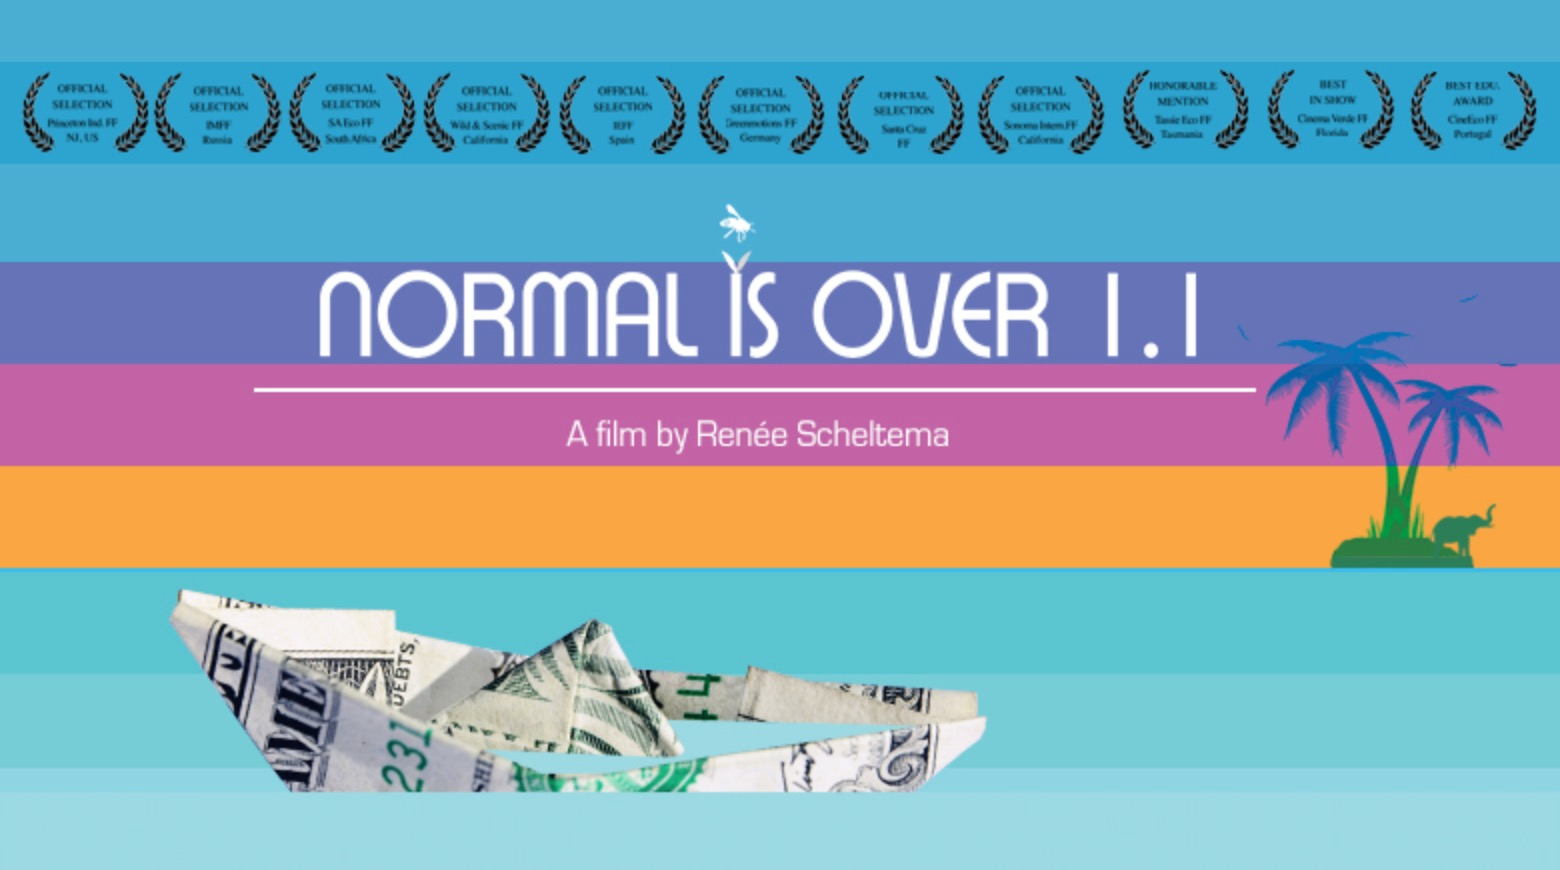 NORMAL IS OVER -DUTCH 1.1, New Version: 112 min.